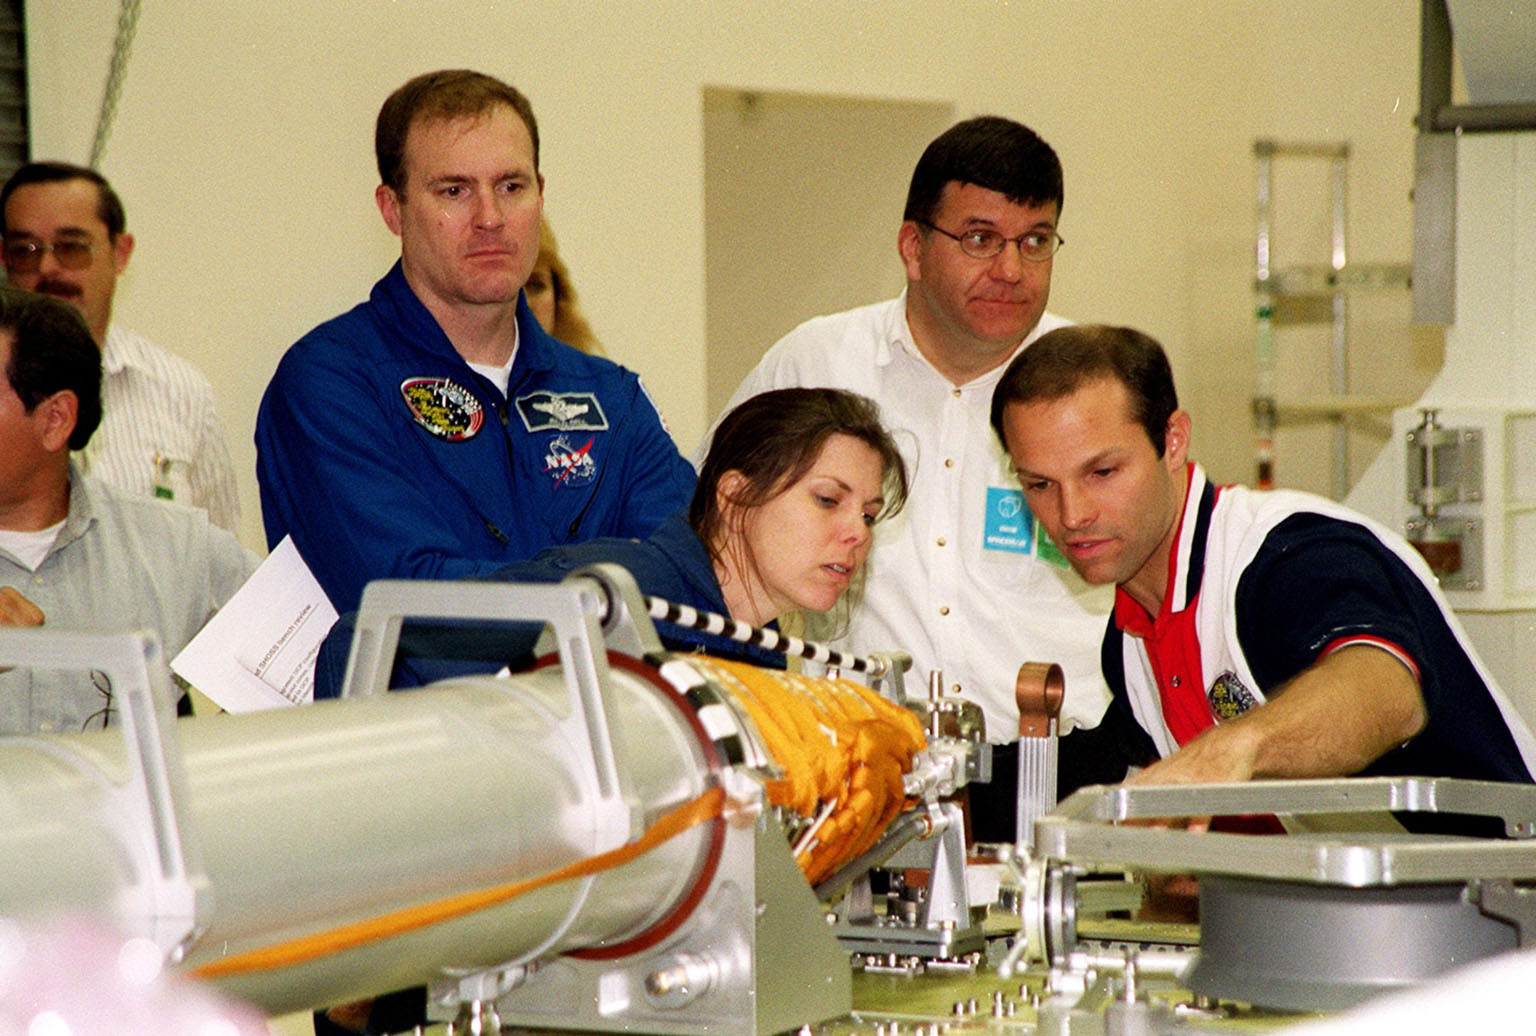 KENNEDY SPACE CENTER, FLA. -- During a Crew Equipment Interface Test (CEIT), members of the STS-101 crew learn about some of the cargo that will be on their mission from workers at SPACEHAB, in Cape Canaveral, Fla. At left are Commander James Donald Halsell Jr., and Mission Specialist Mary Ellen Weber, (Ph.D.). Other crew members are Pilot Scott Horowitz, and Mission Specialists Edward Lu, Jeffrey N. Williams, and Boris W. Morukov and Yuri Malenchenko, who are with the Russian Space Agency. The primary objective of the STS-101 mission is to complete the initial outfitting of the International Space Station, making it fully ready for the first long-term crew. The seven-member crew will transfer almost two tons of equipment and supplies from SPACEHAB's Logistics Double Module. Additionally, they will unpack a shipment of supplies delivered earlier by a Russian Progress space tug and begin outfitting the newly arrived Zvezda Service Module. Three astronauts will perform two space walks to transfer and install parts of the Russian Strela cargo boom that are attached to SPACEHAB's Integrated Cargo Container, connect utility cables between Zarya and Zvezda, and install a magnetometer/pole assembly on the Service Module. Additional activities for the STS-101 astronauts include working with the Space Experiment Module (SEM-06) and the Mission to America's Remarkable Schools (MARS), two educational initiatives. STS-101 is scheduled for launch no earlier than March 16, 2000